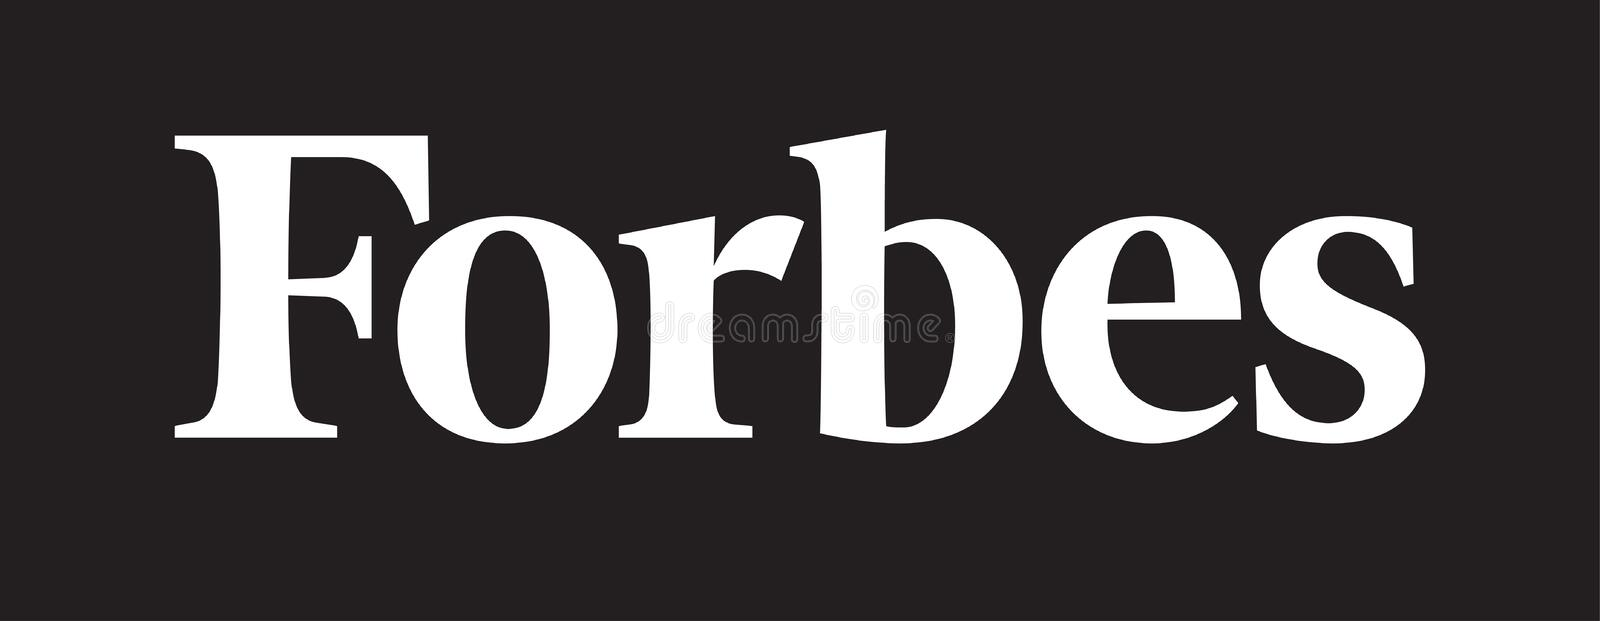 Forbes logo news. Forbes is an American business magazine. Published bi-weekly, it features original articles on finance, industry, investing, and marketing